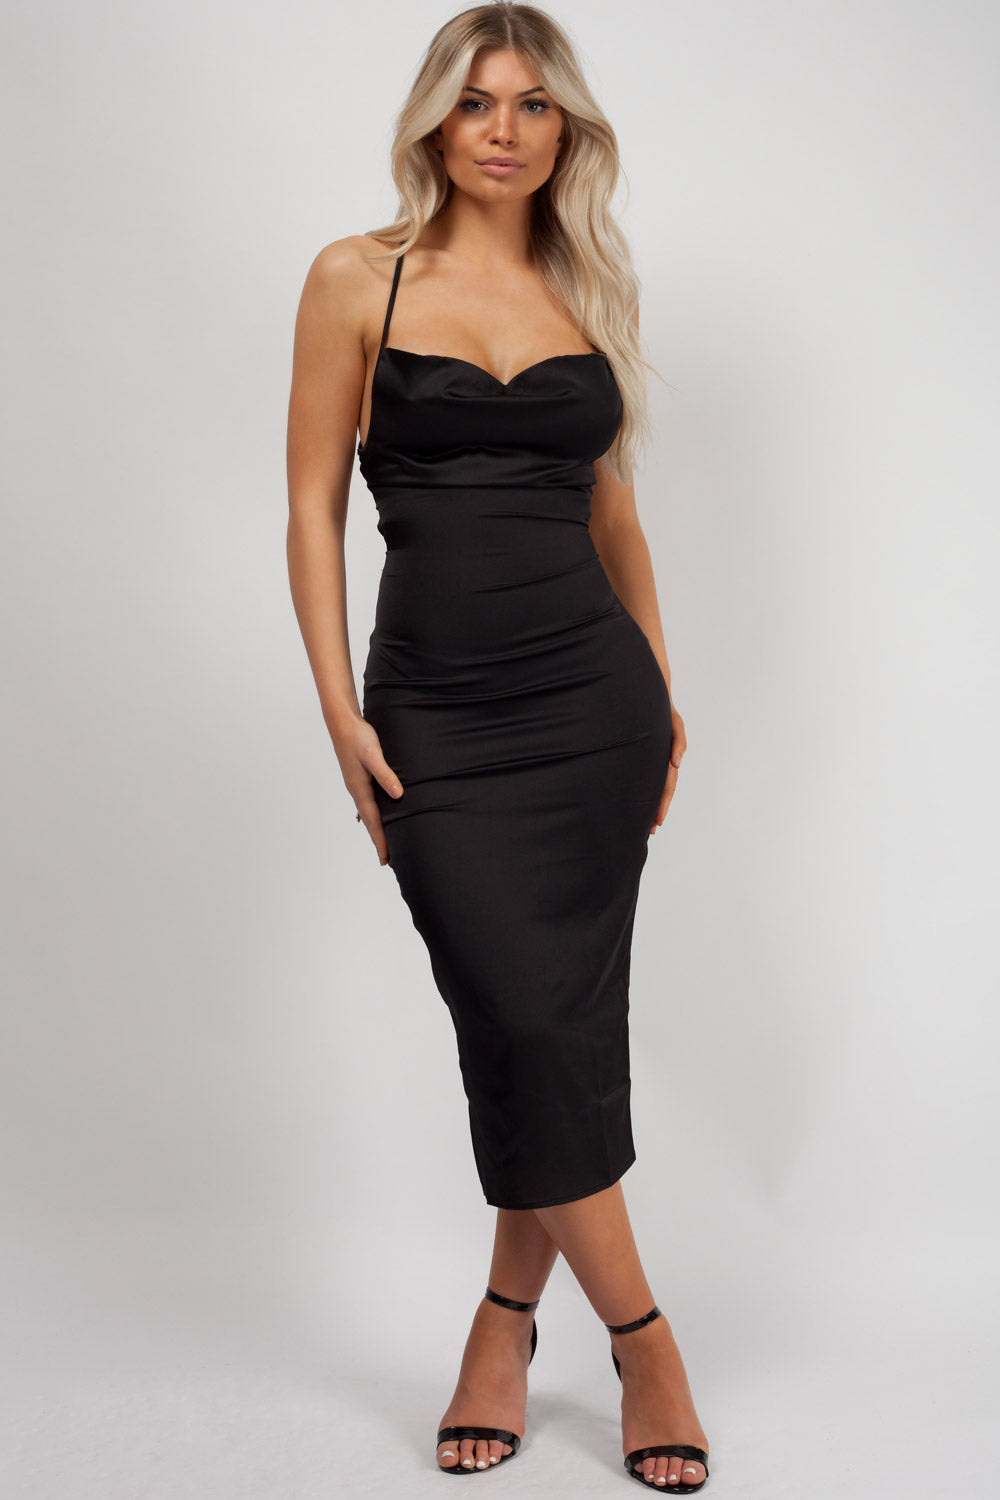 bodycon dress black